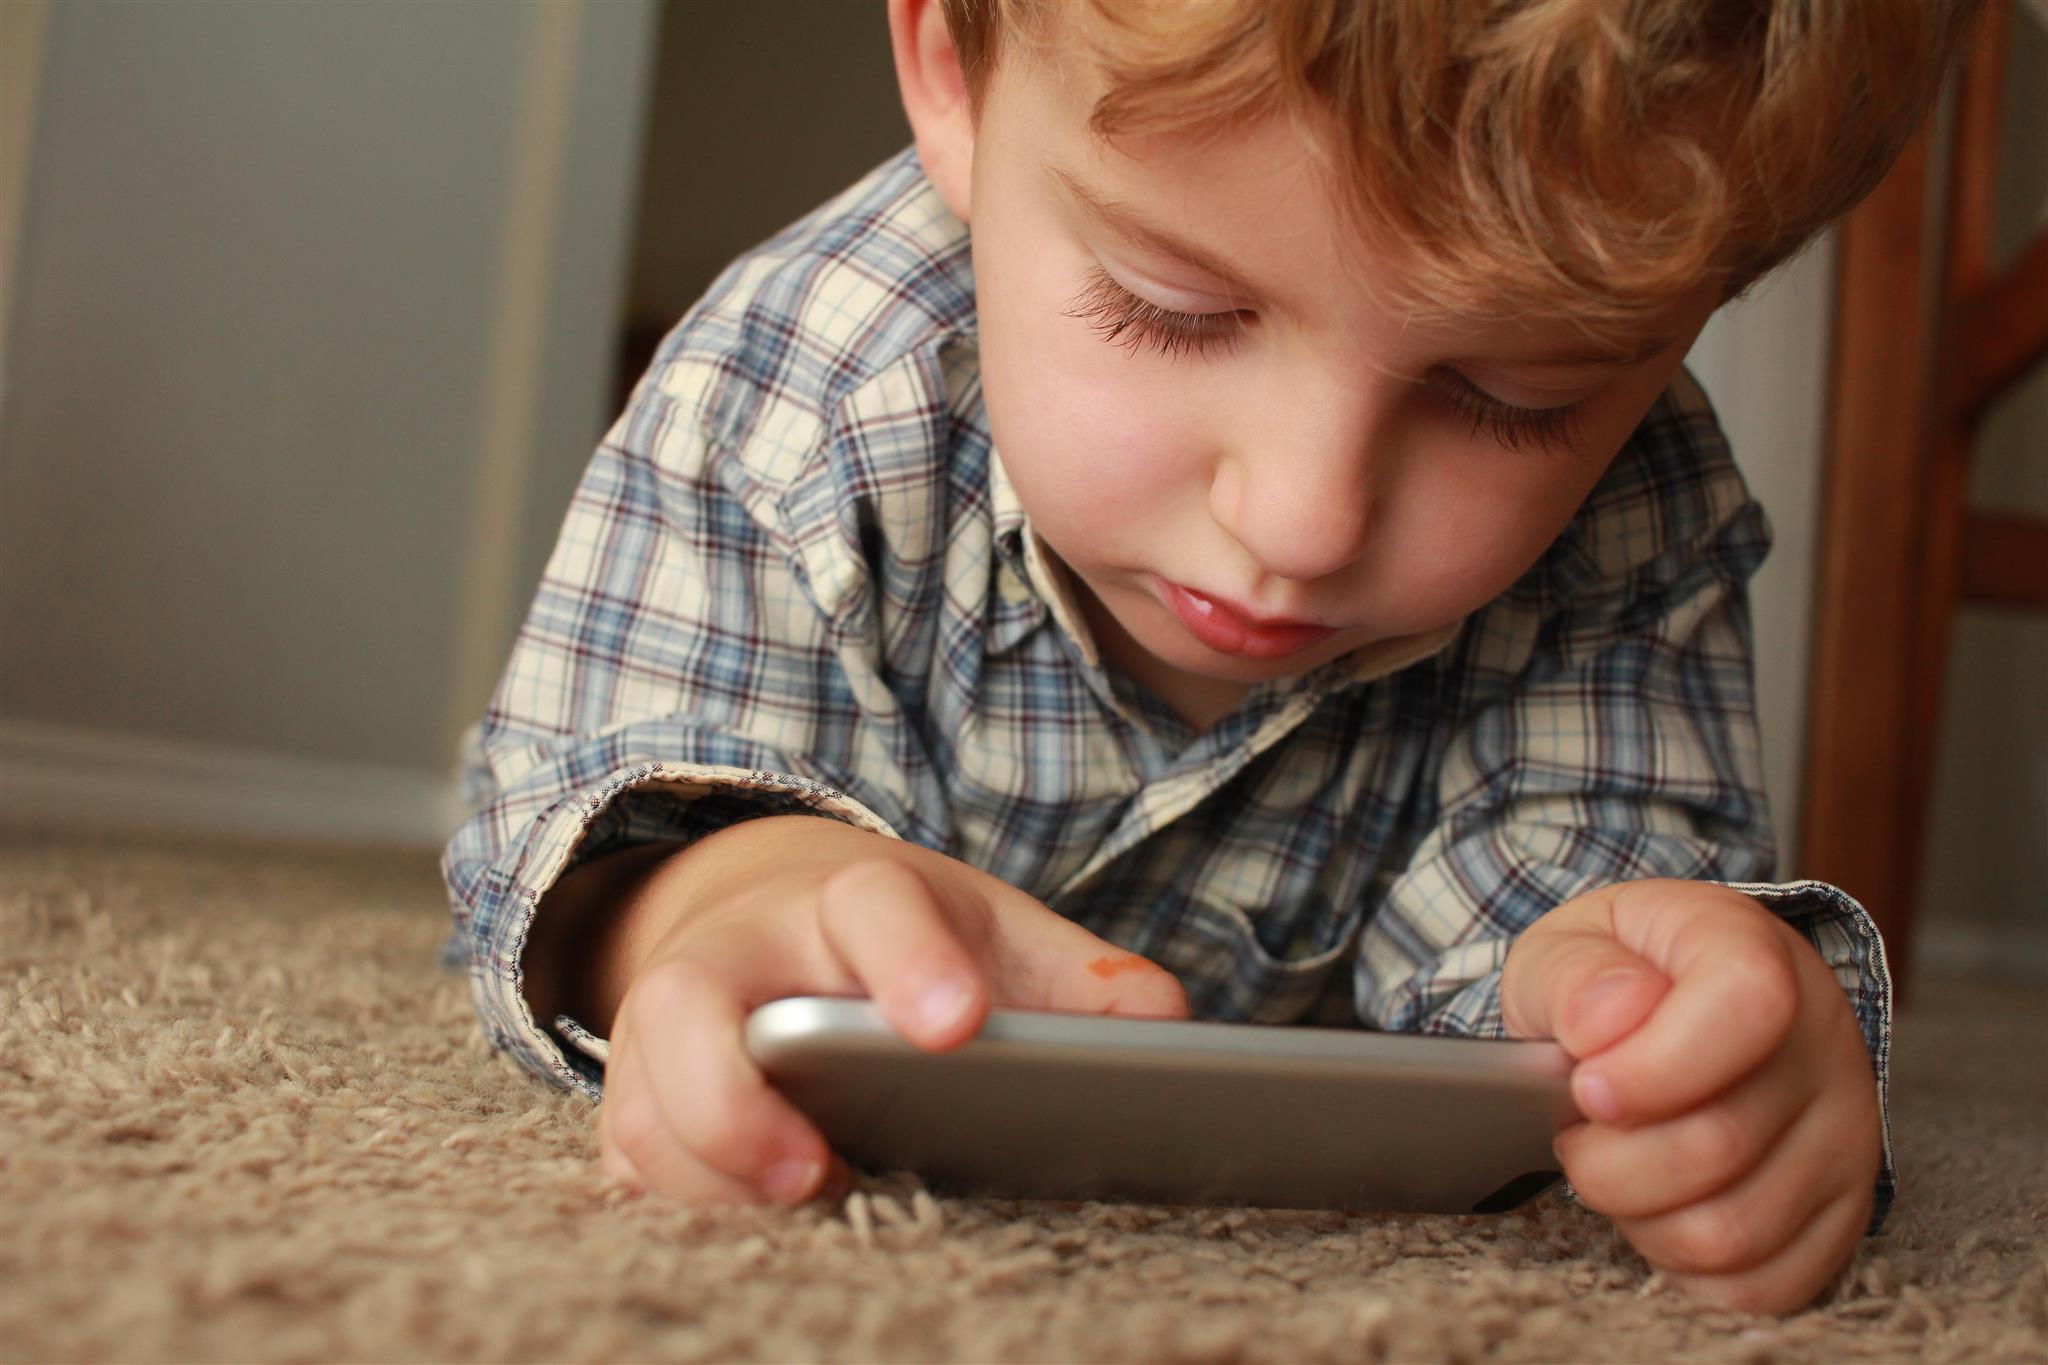 a close up image of a child laying down on a carpet closely looking at a mobile device while holding it with both hands